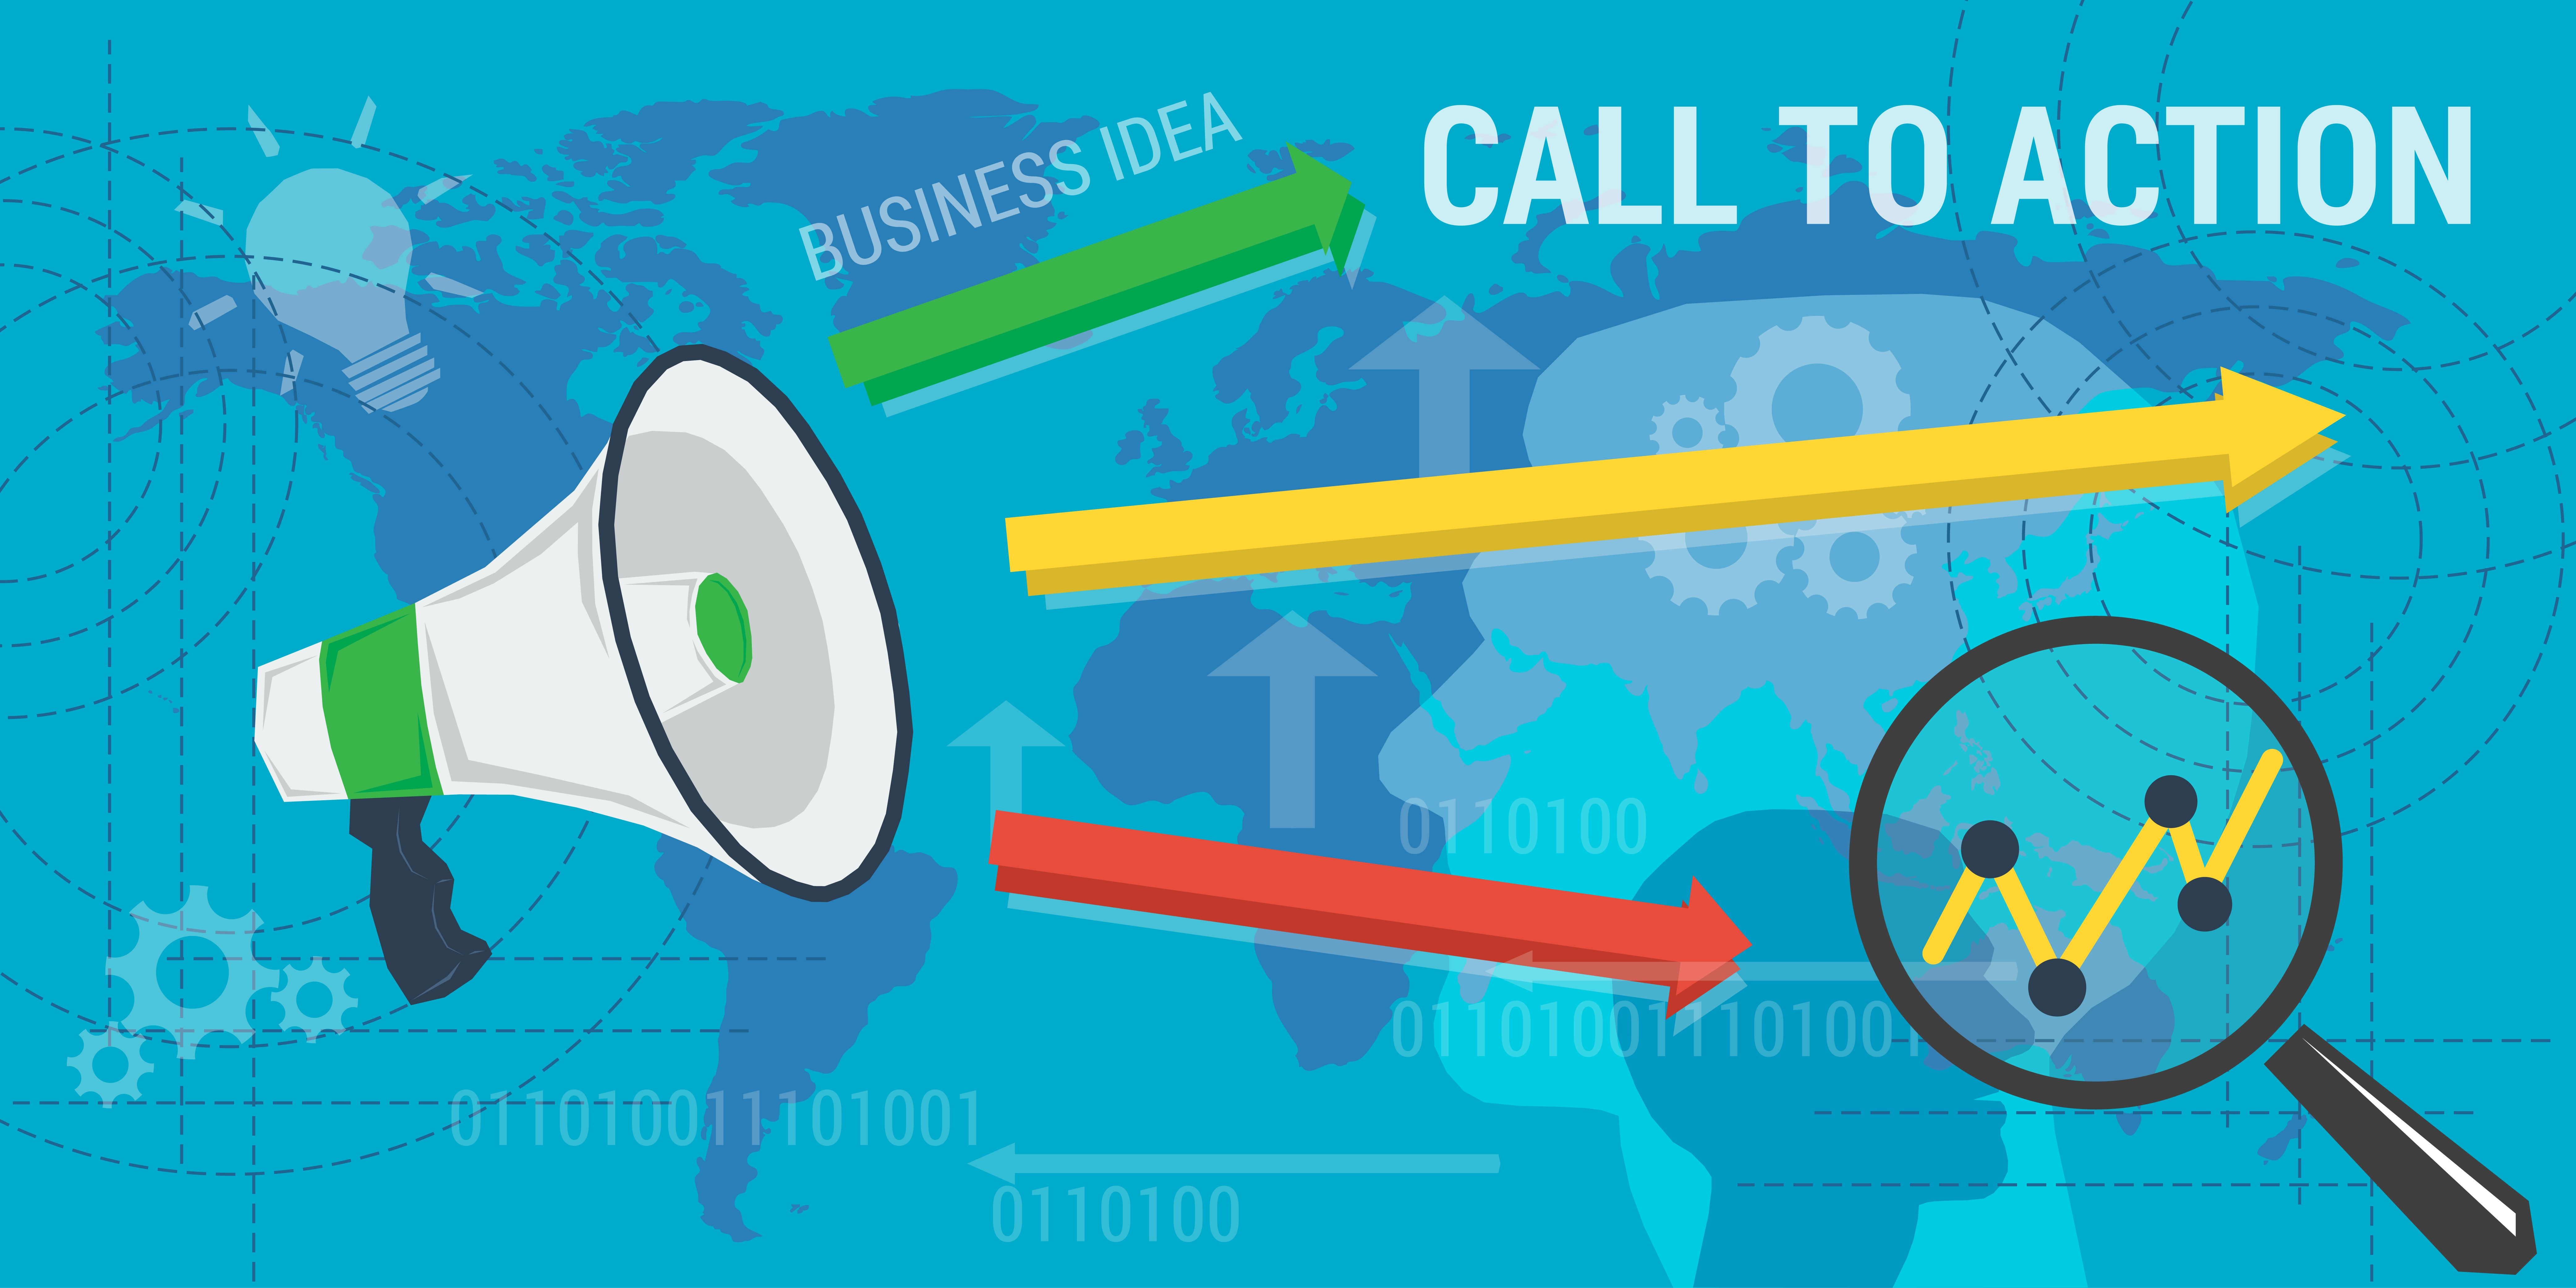 Call to Action Illustration